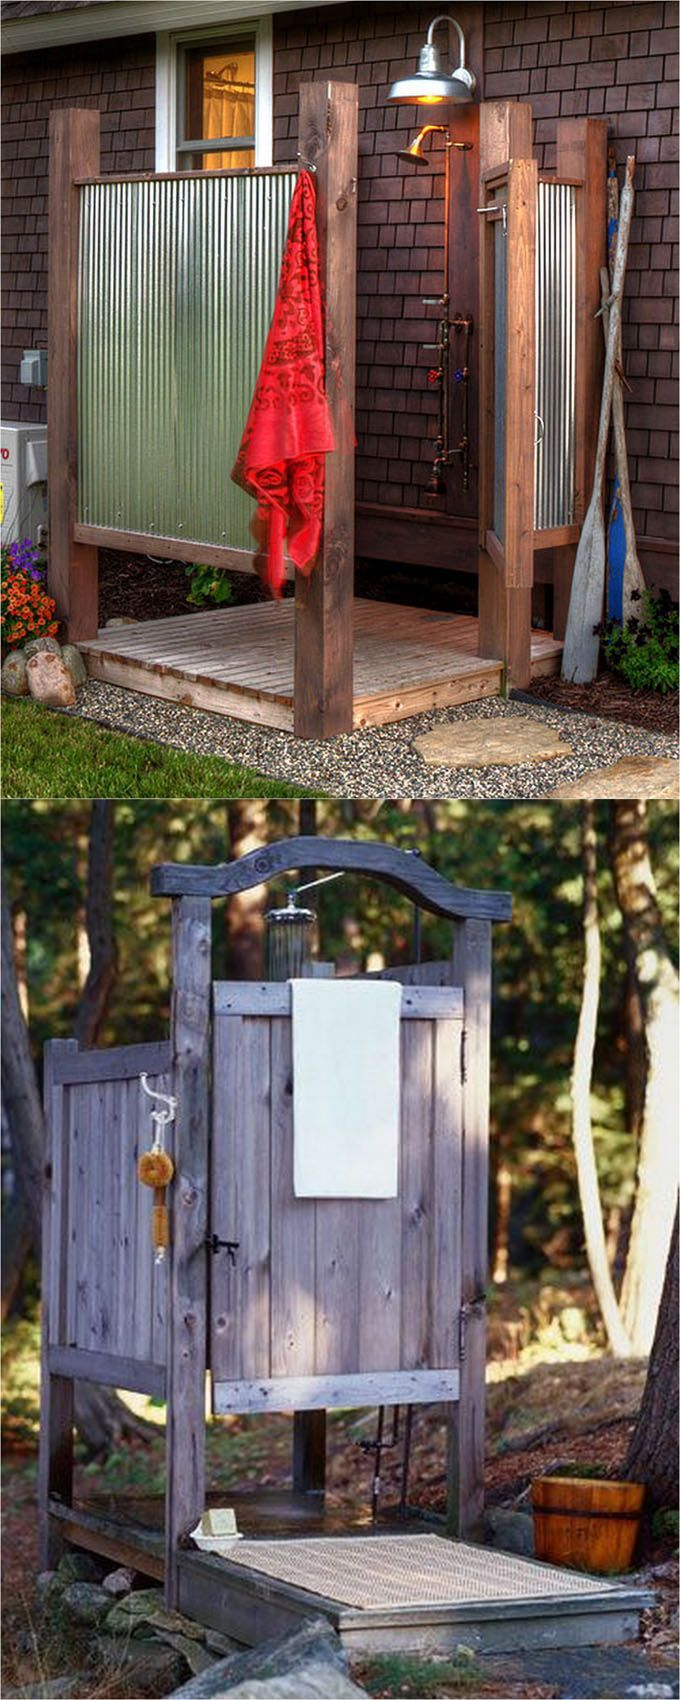 32 Beautiful Diy Outdoor Shower Ideas For The Best Summer Ever